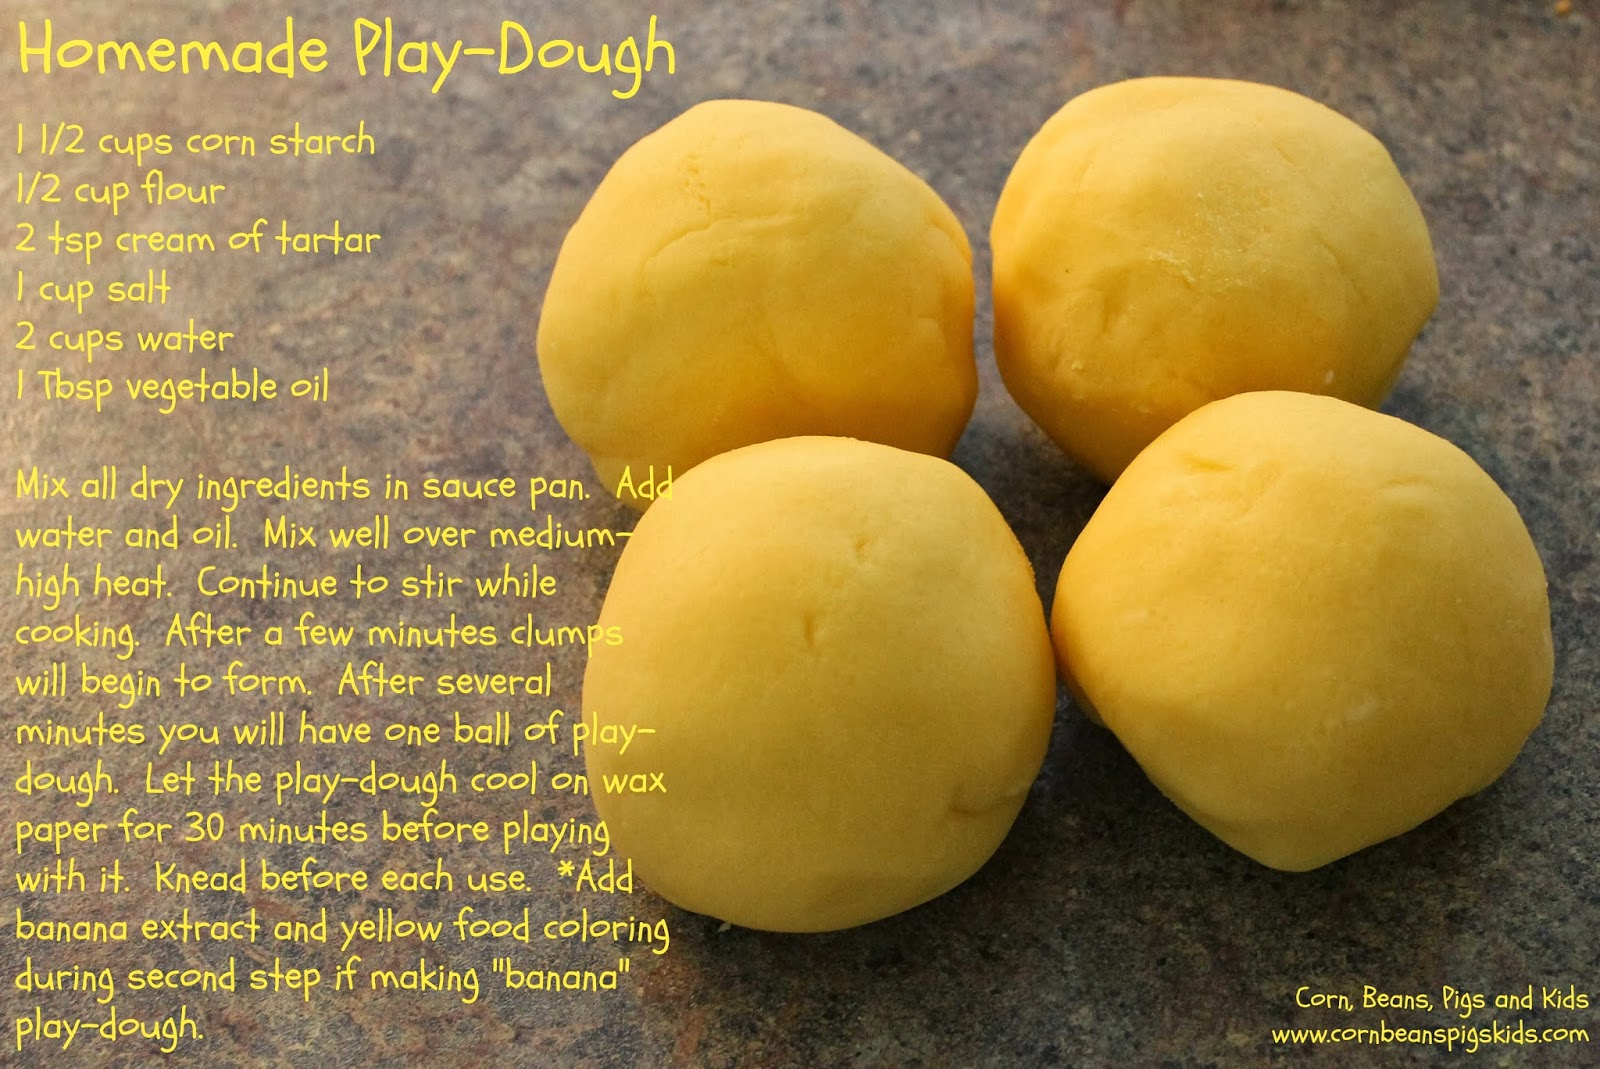 Homemade Play-Dough Recipe